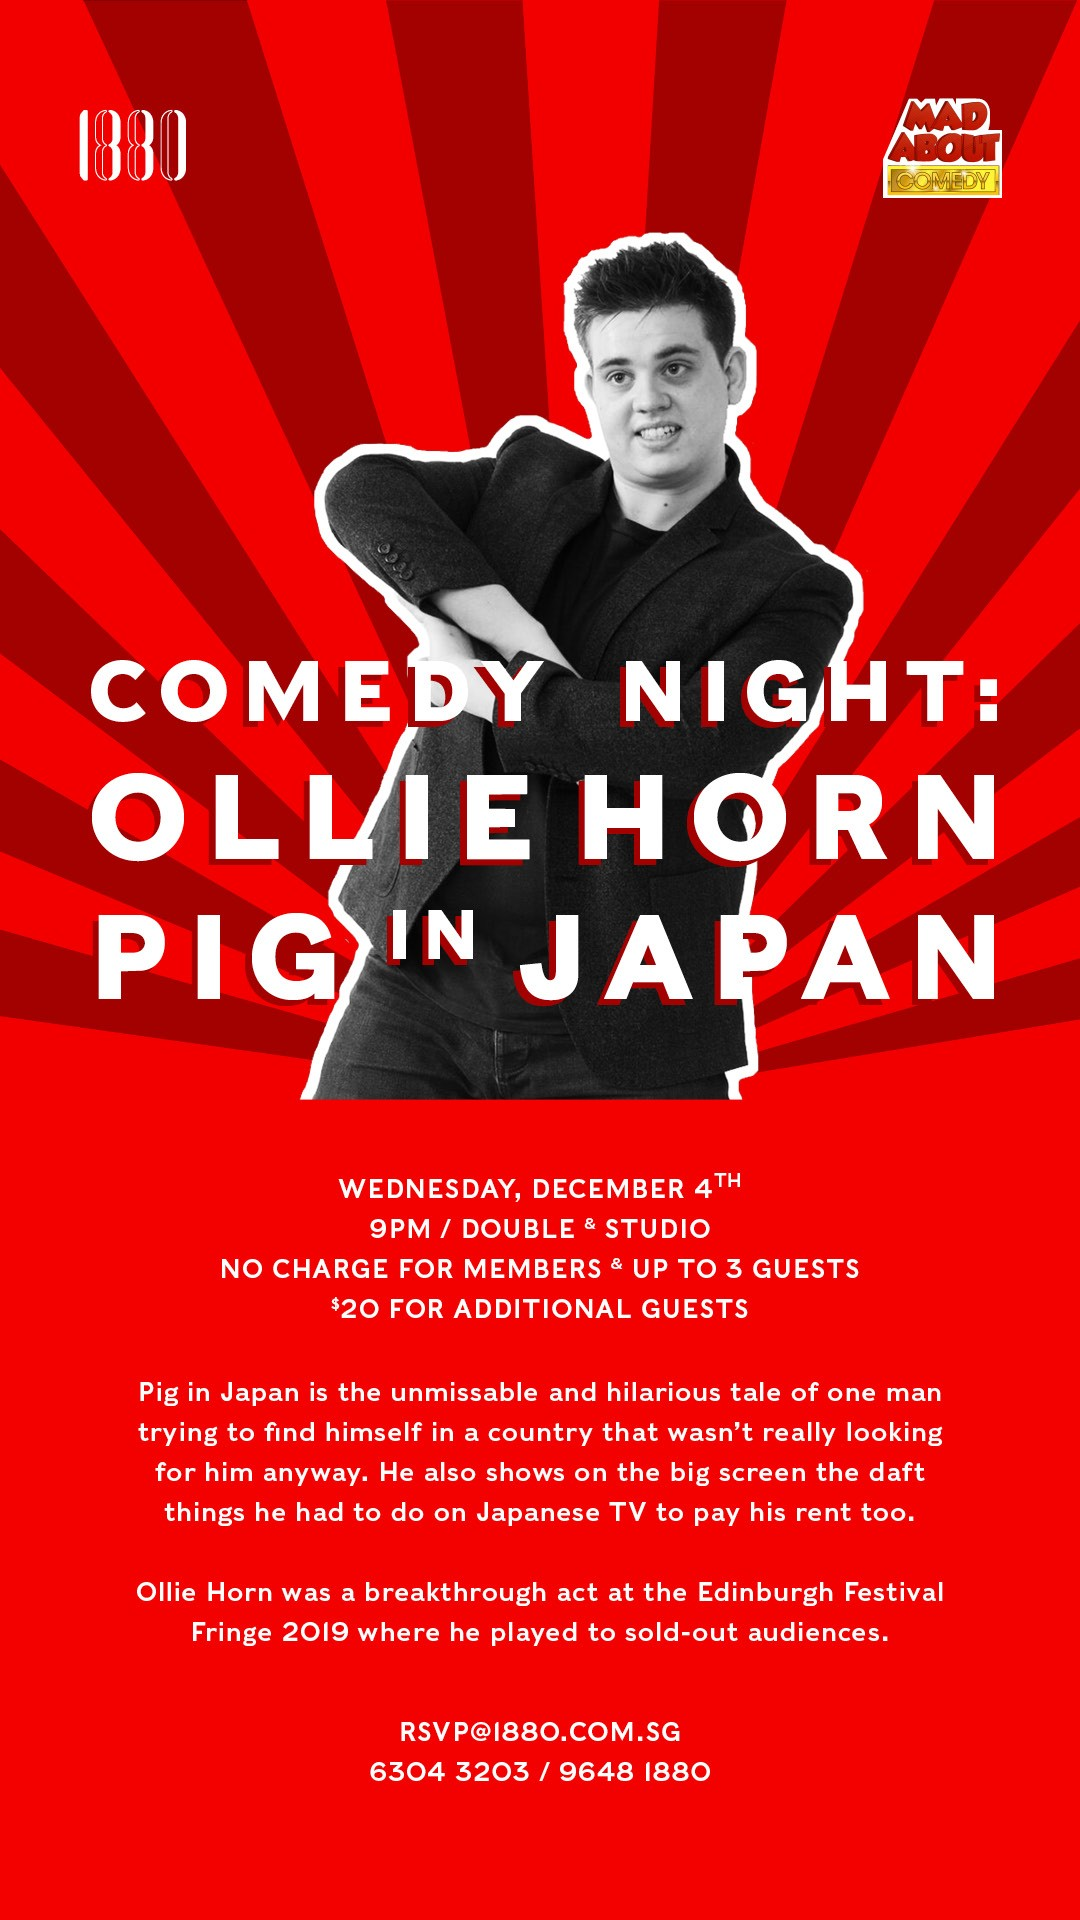 Comedy Night: Ollie Horn's Pig in Japan